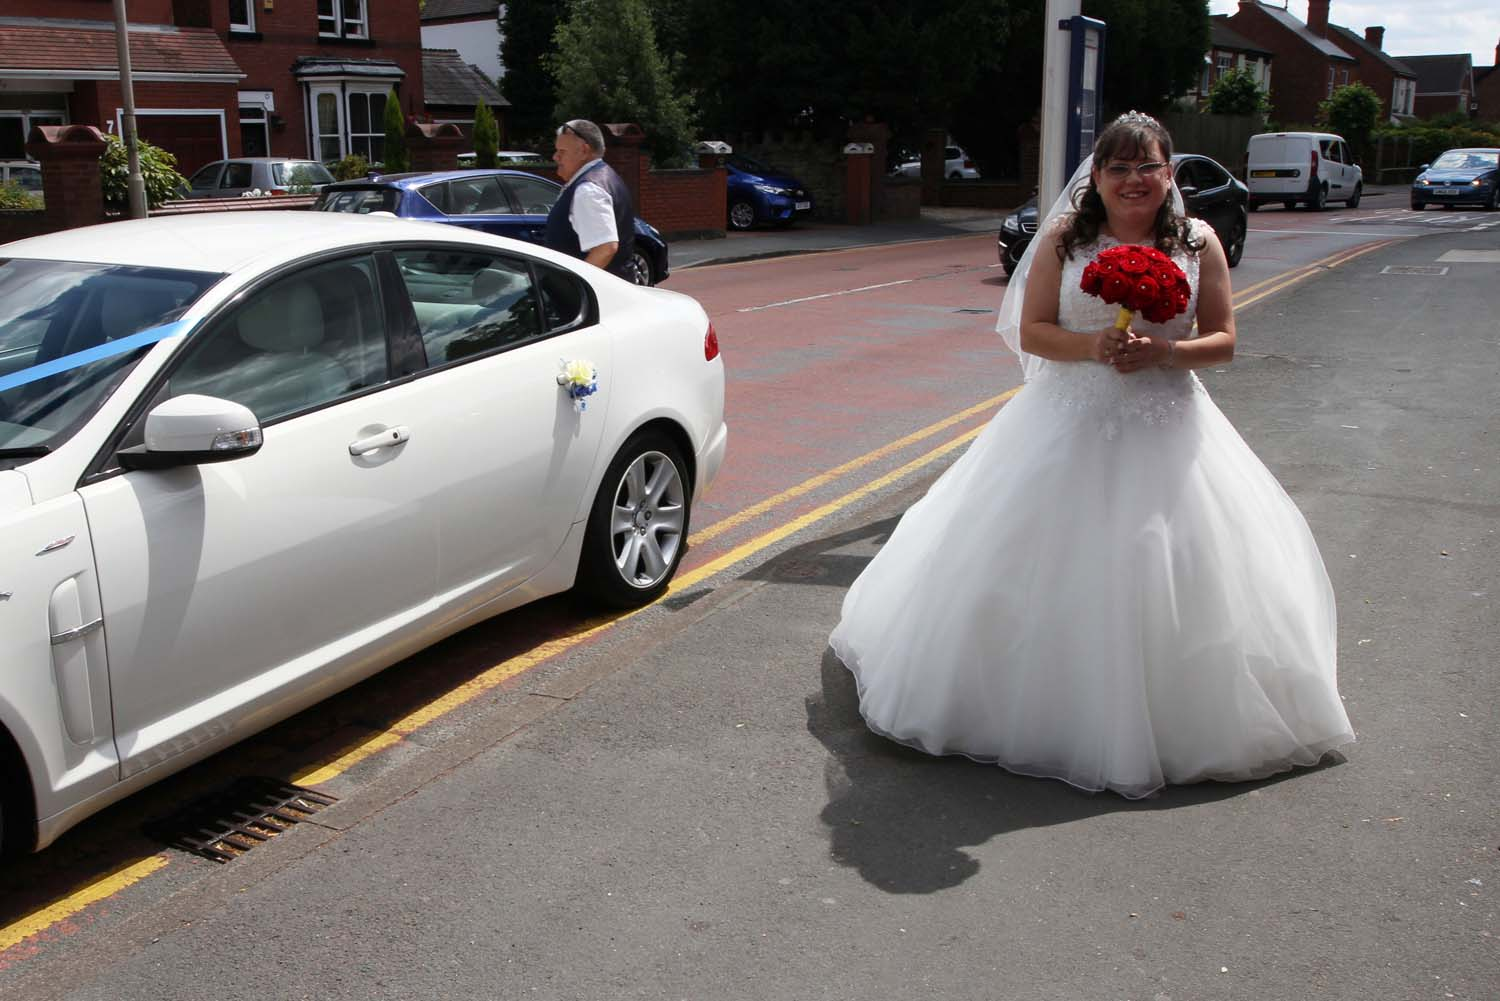 Bride arriving in style in her white wedding car.